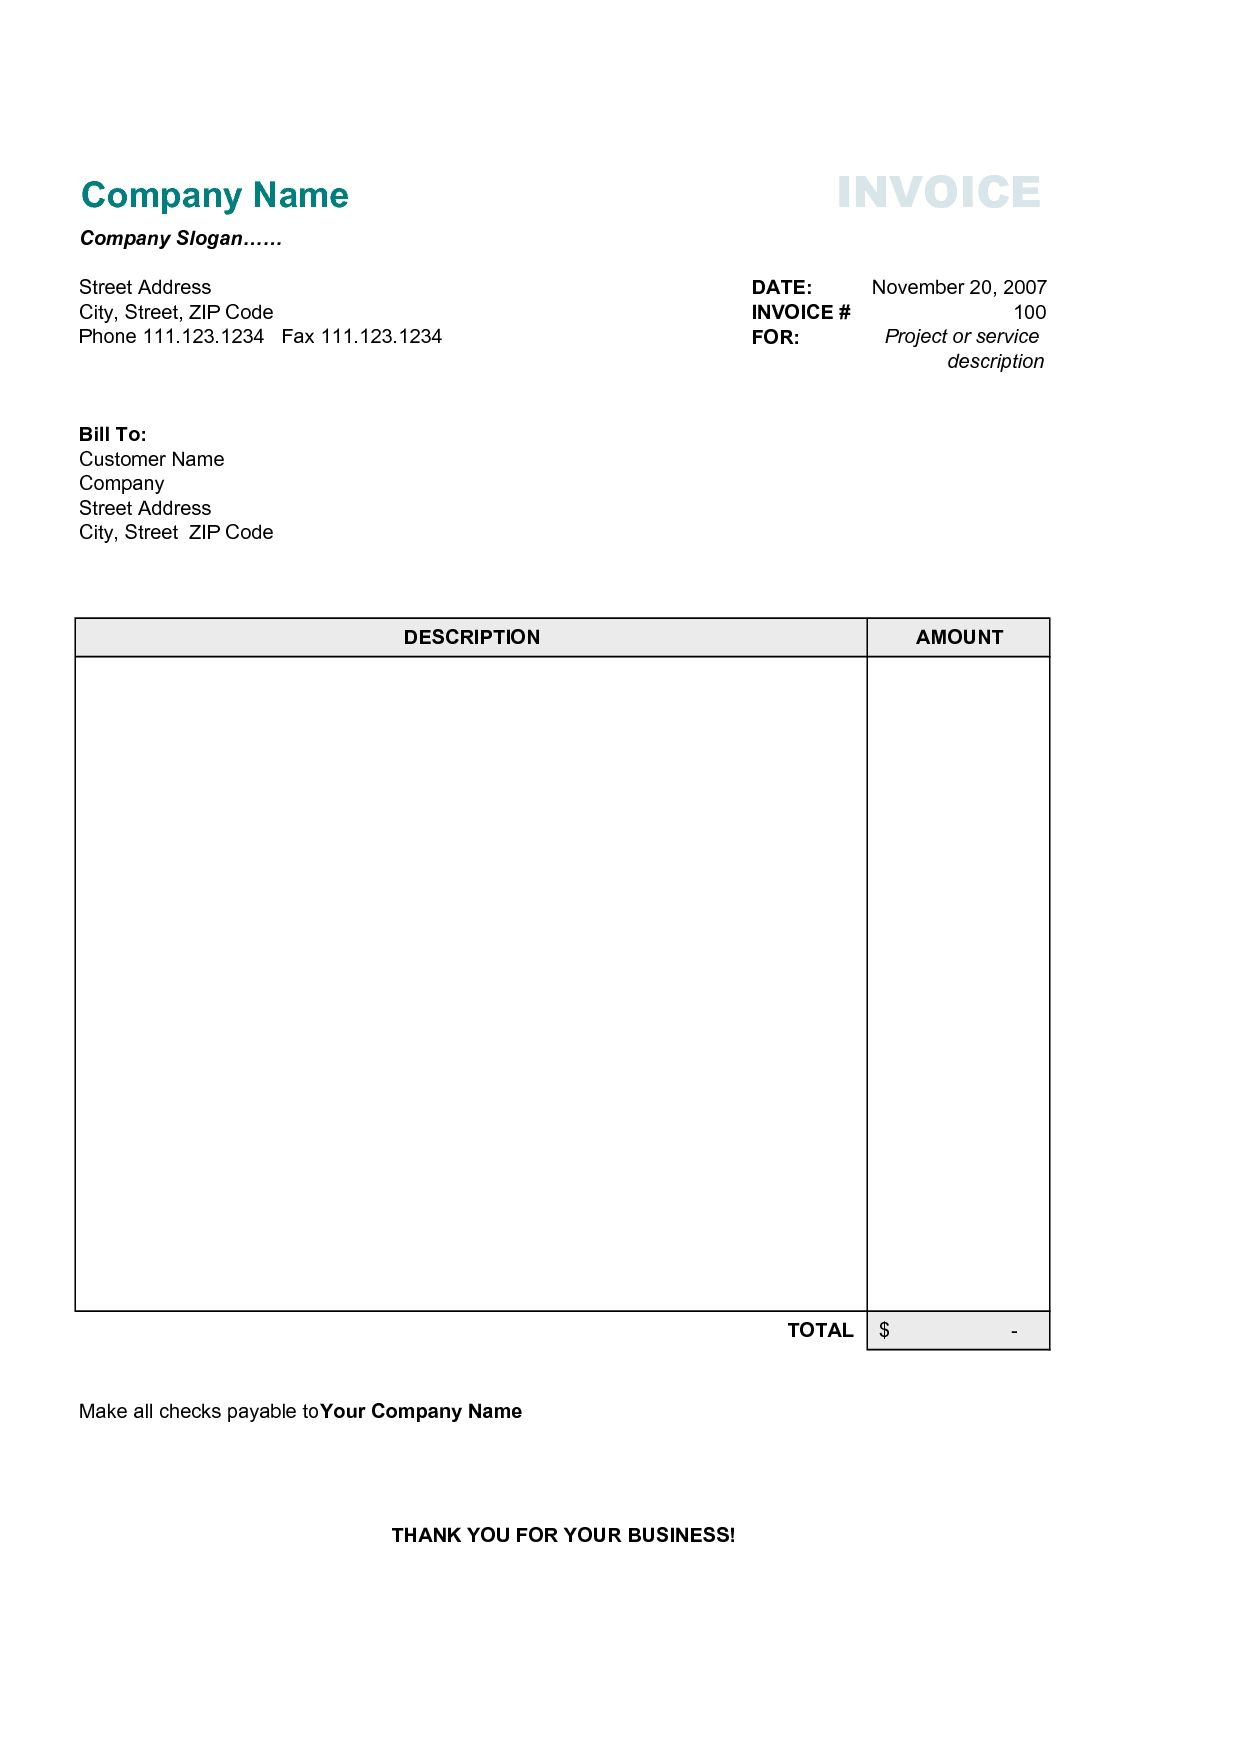 Best Photos Of Printable Commercial Invoice Sample Business - Invoice samples free for service business